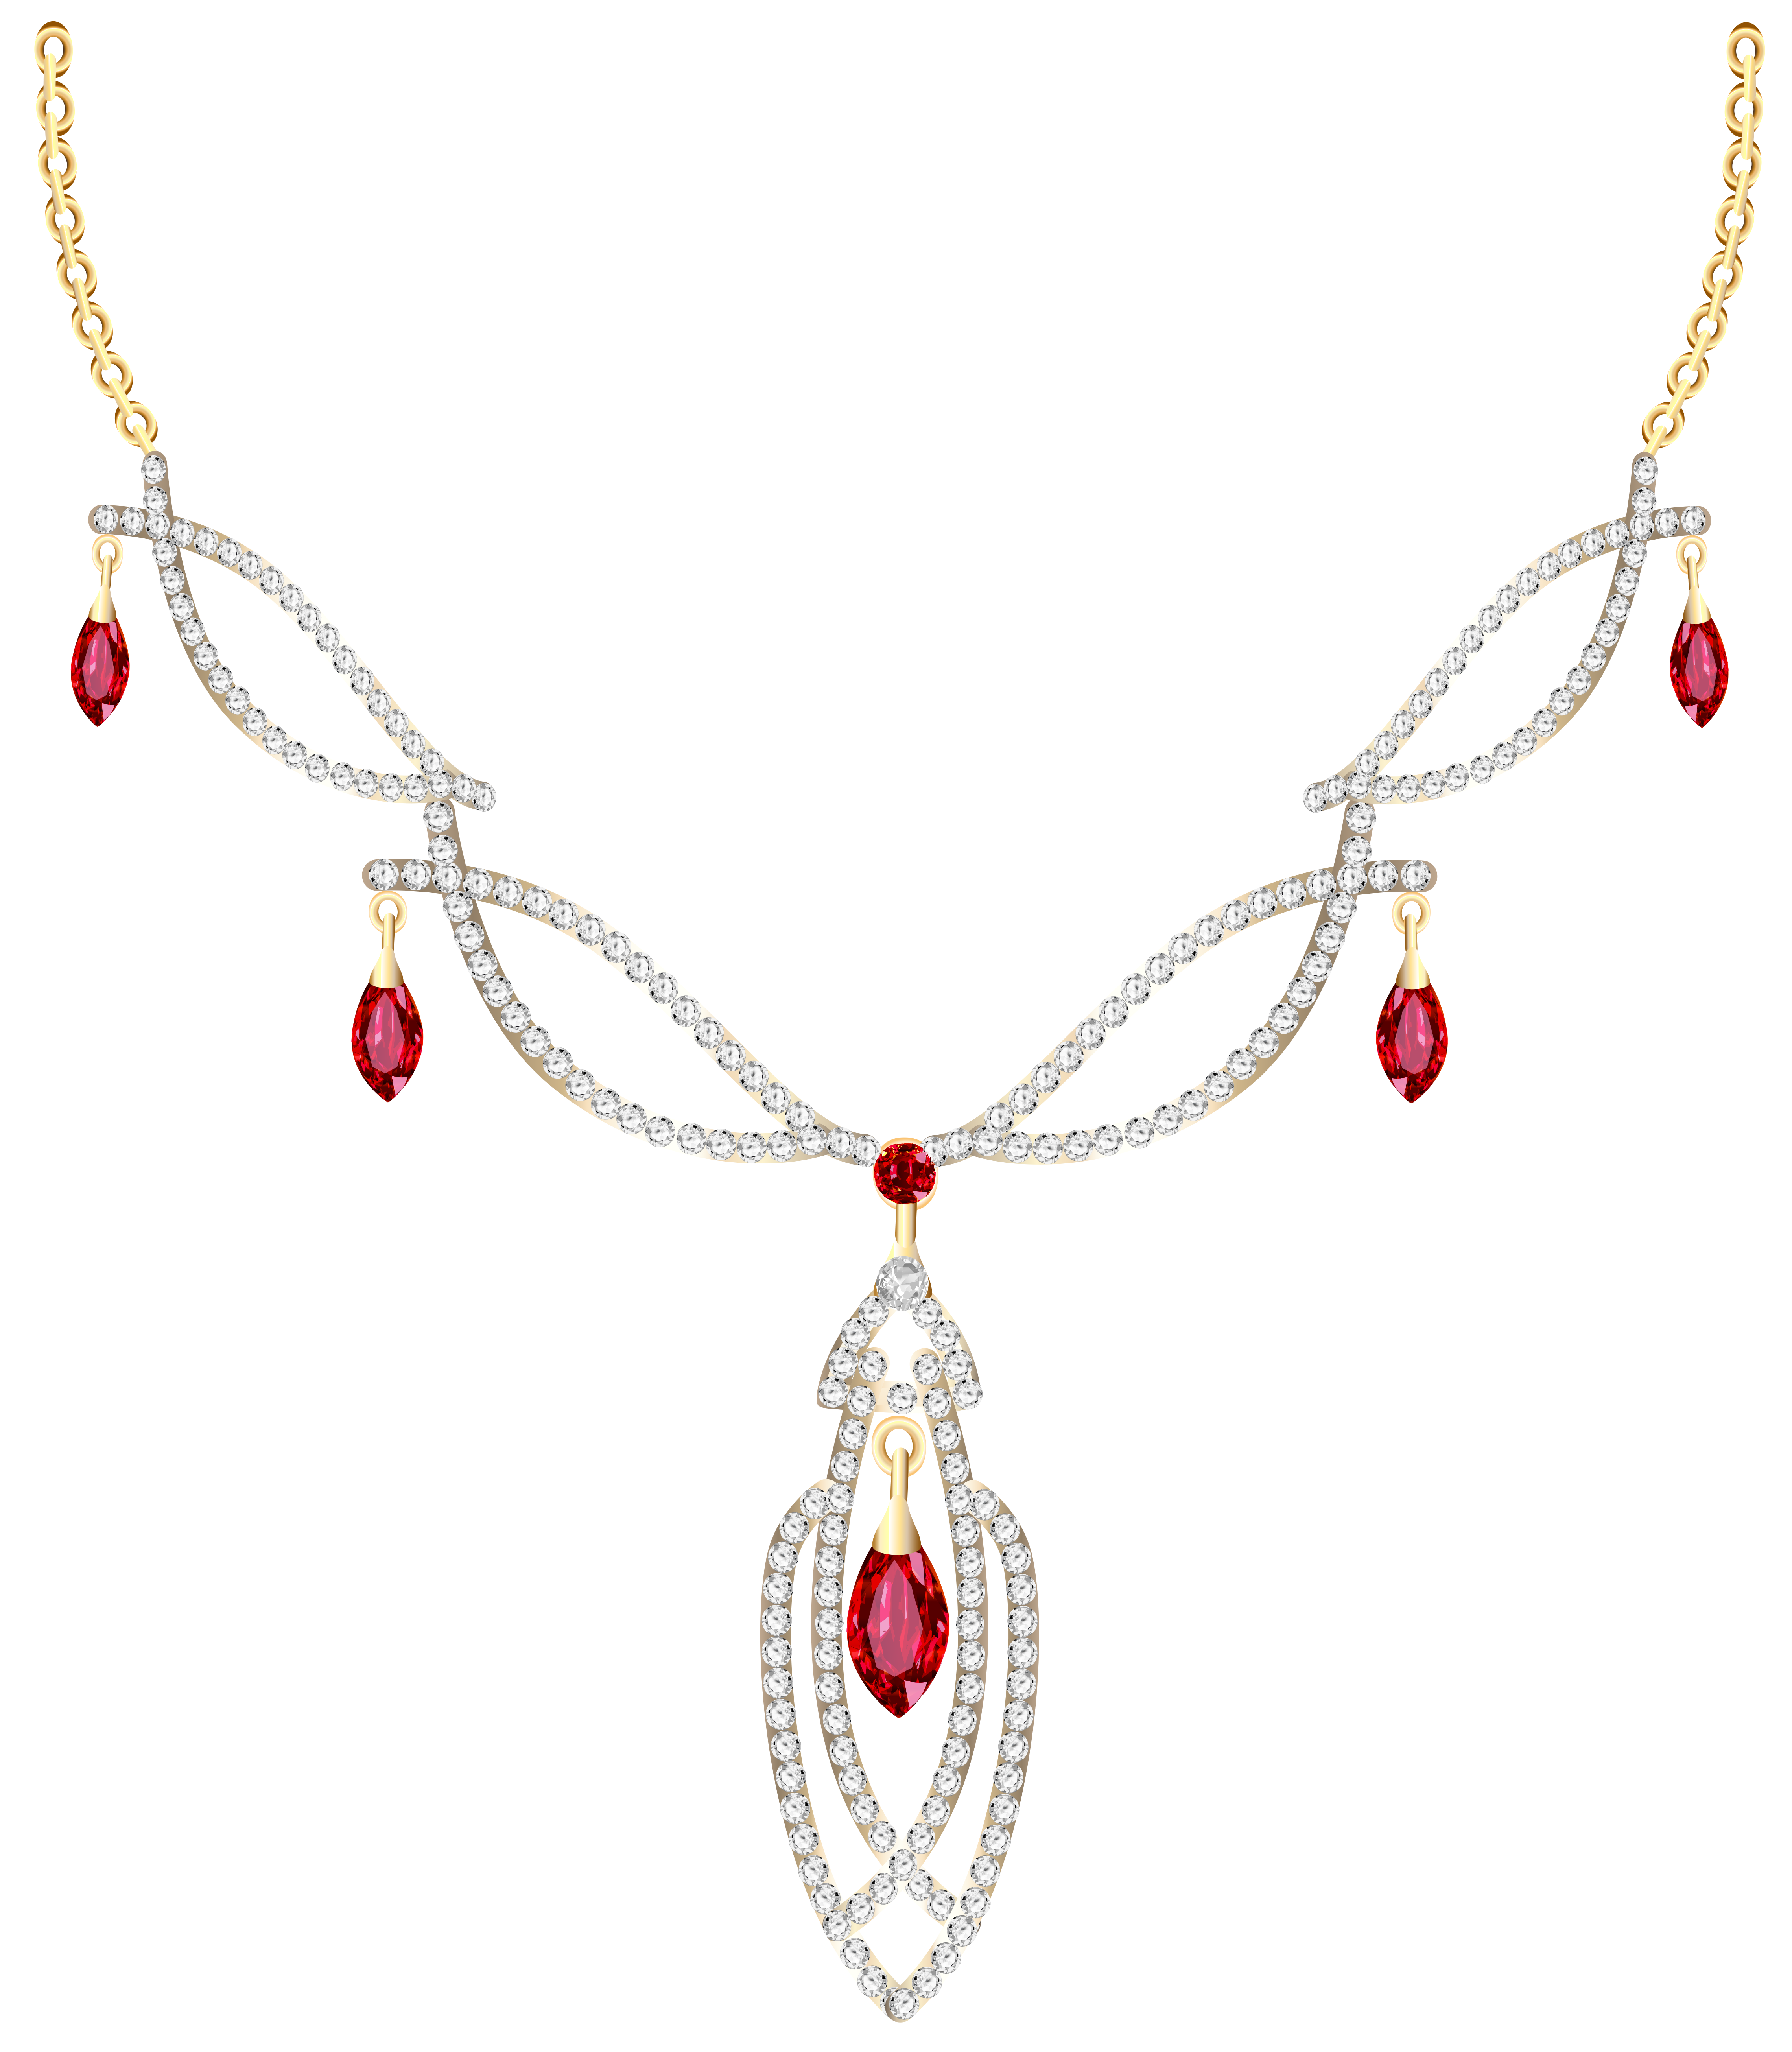 Garland clipart pendant. Golden necklace with diamonds